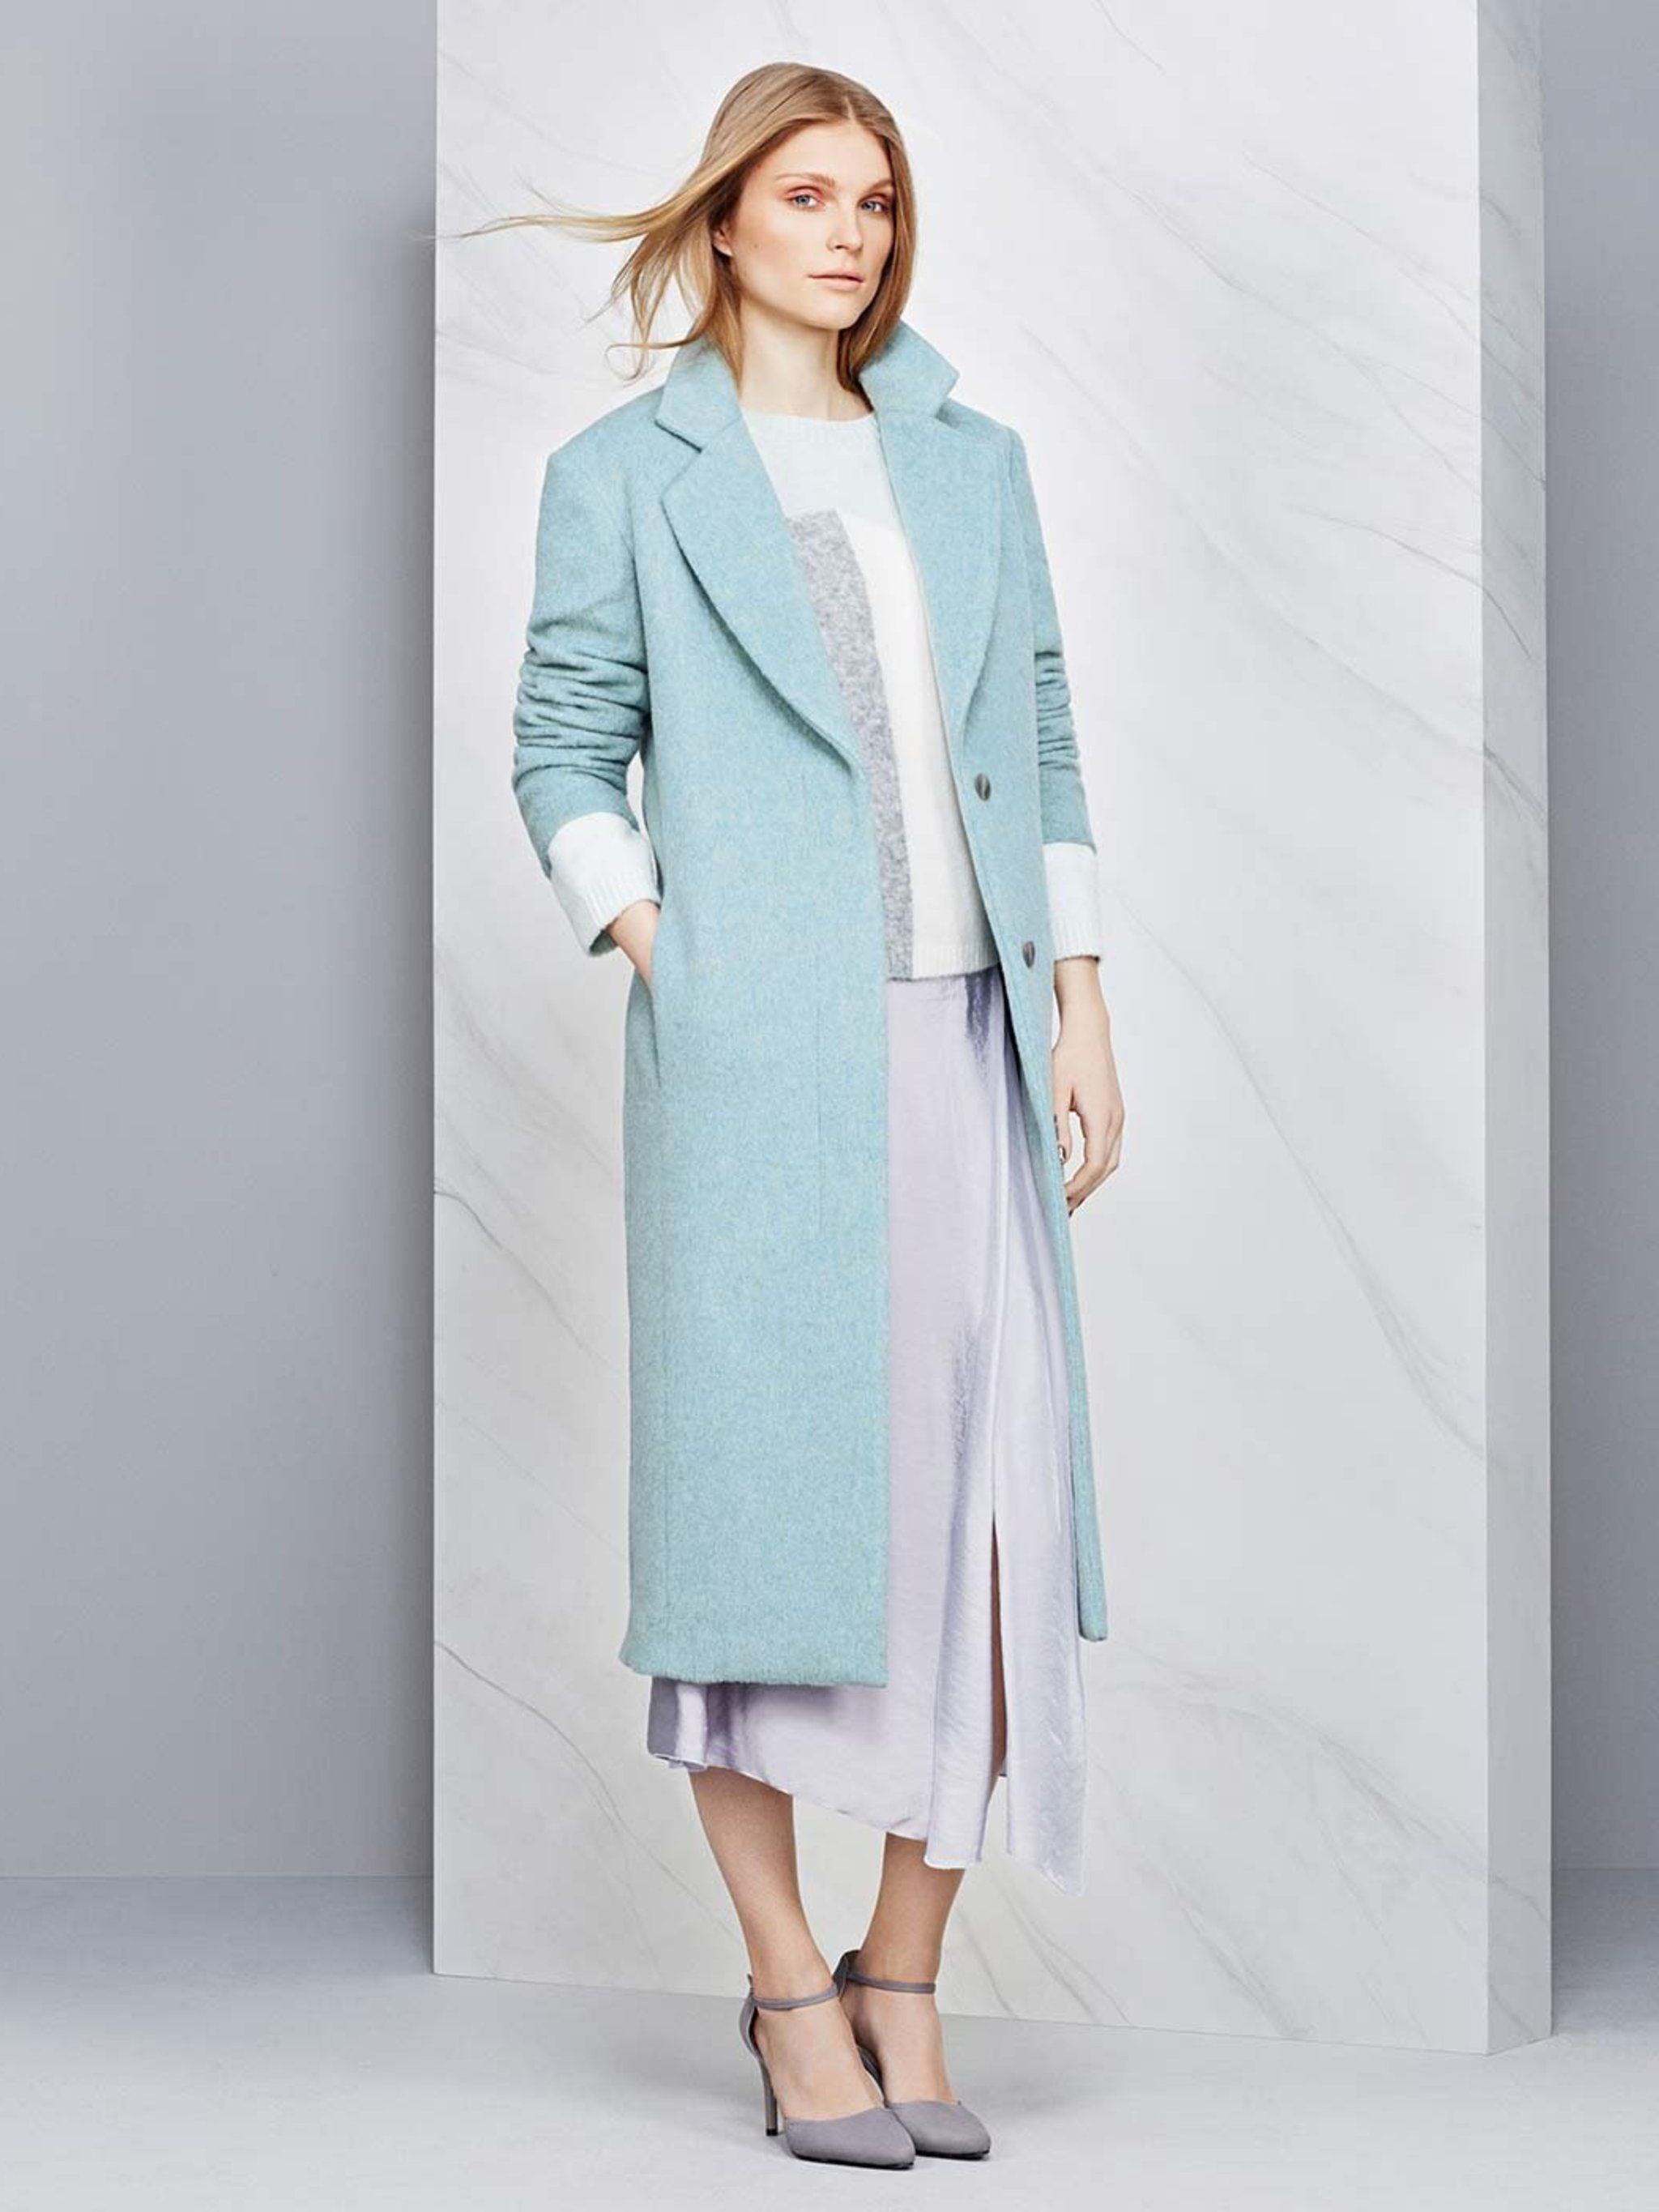 First look: M&S a/w 2014